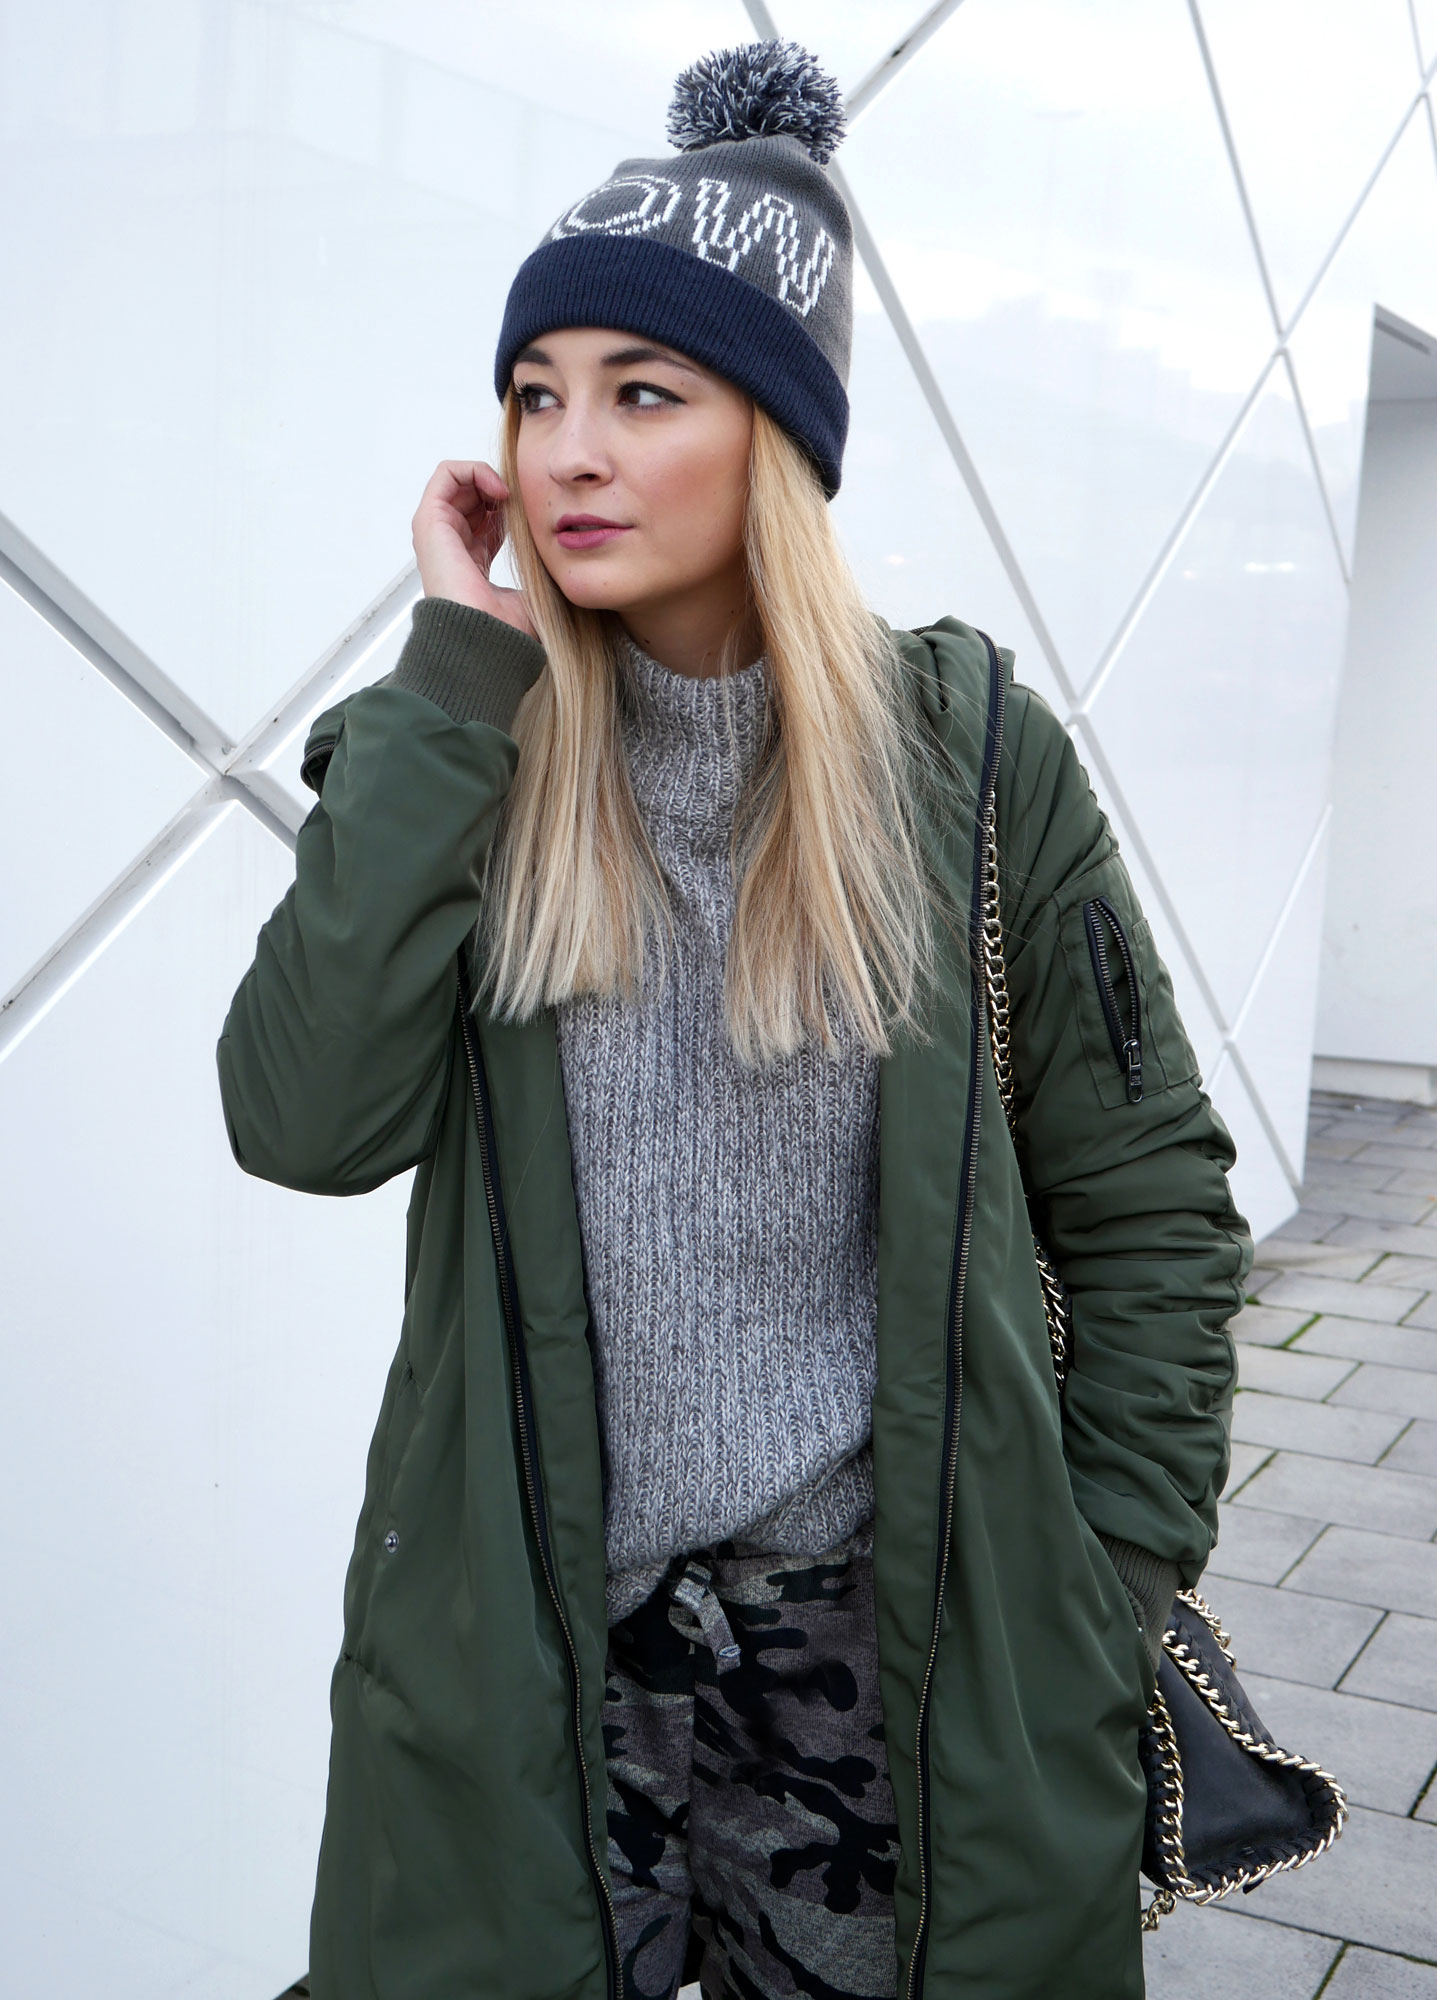 camouflage-look-khaki-jogger-parka-steve-madden-munich-detail-wow-knit-pullover-hm-blogger-dior.jpg